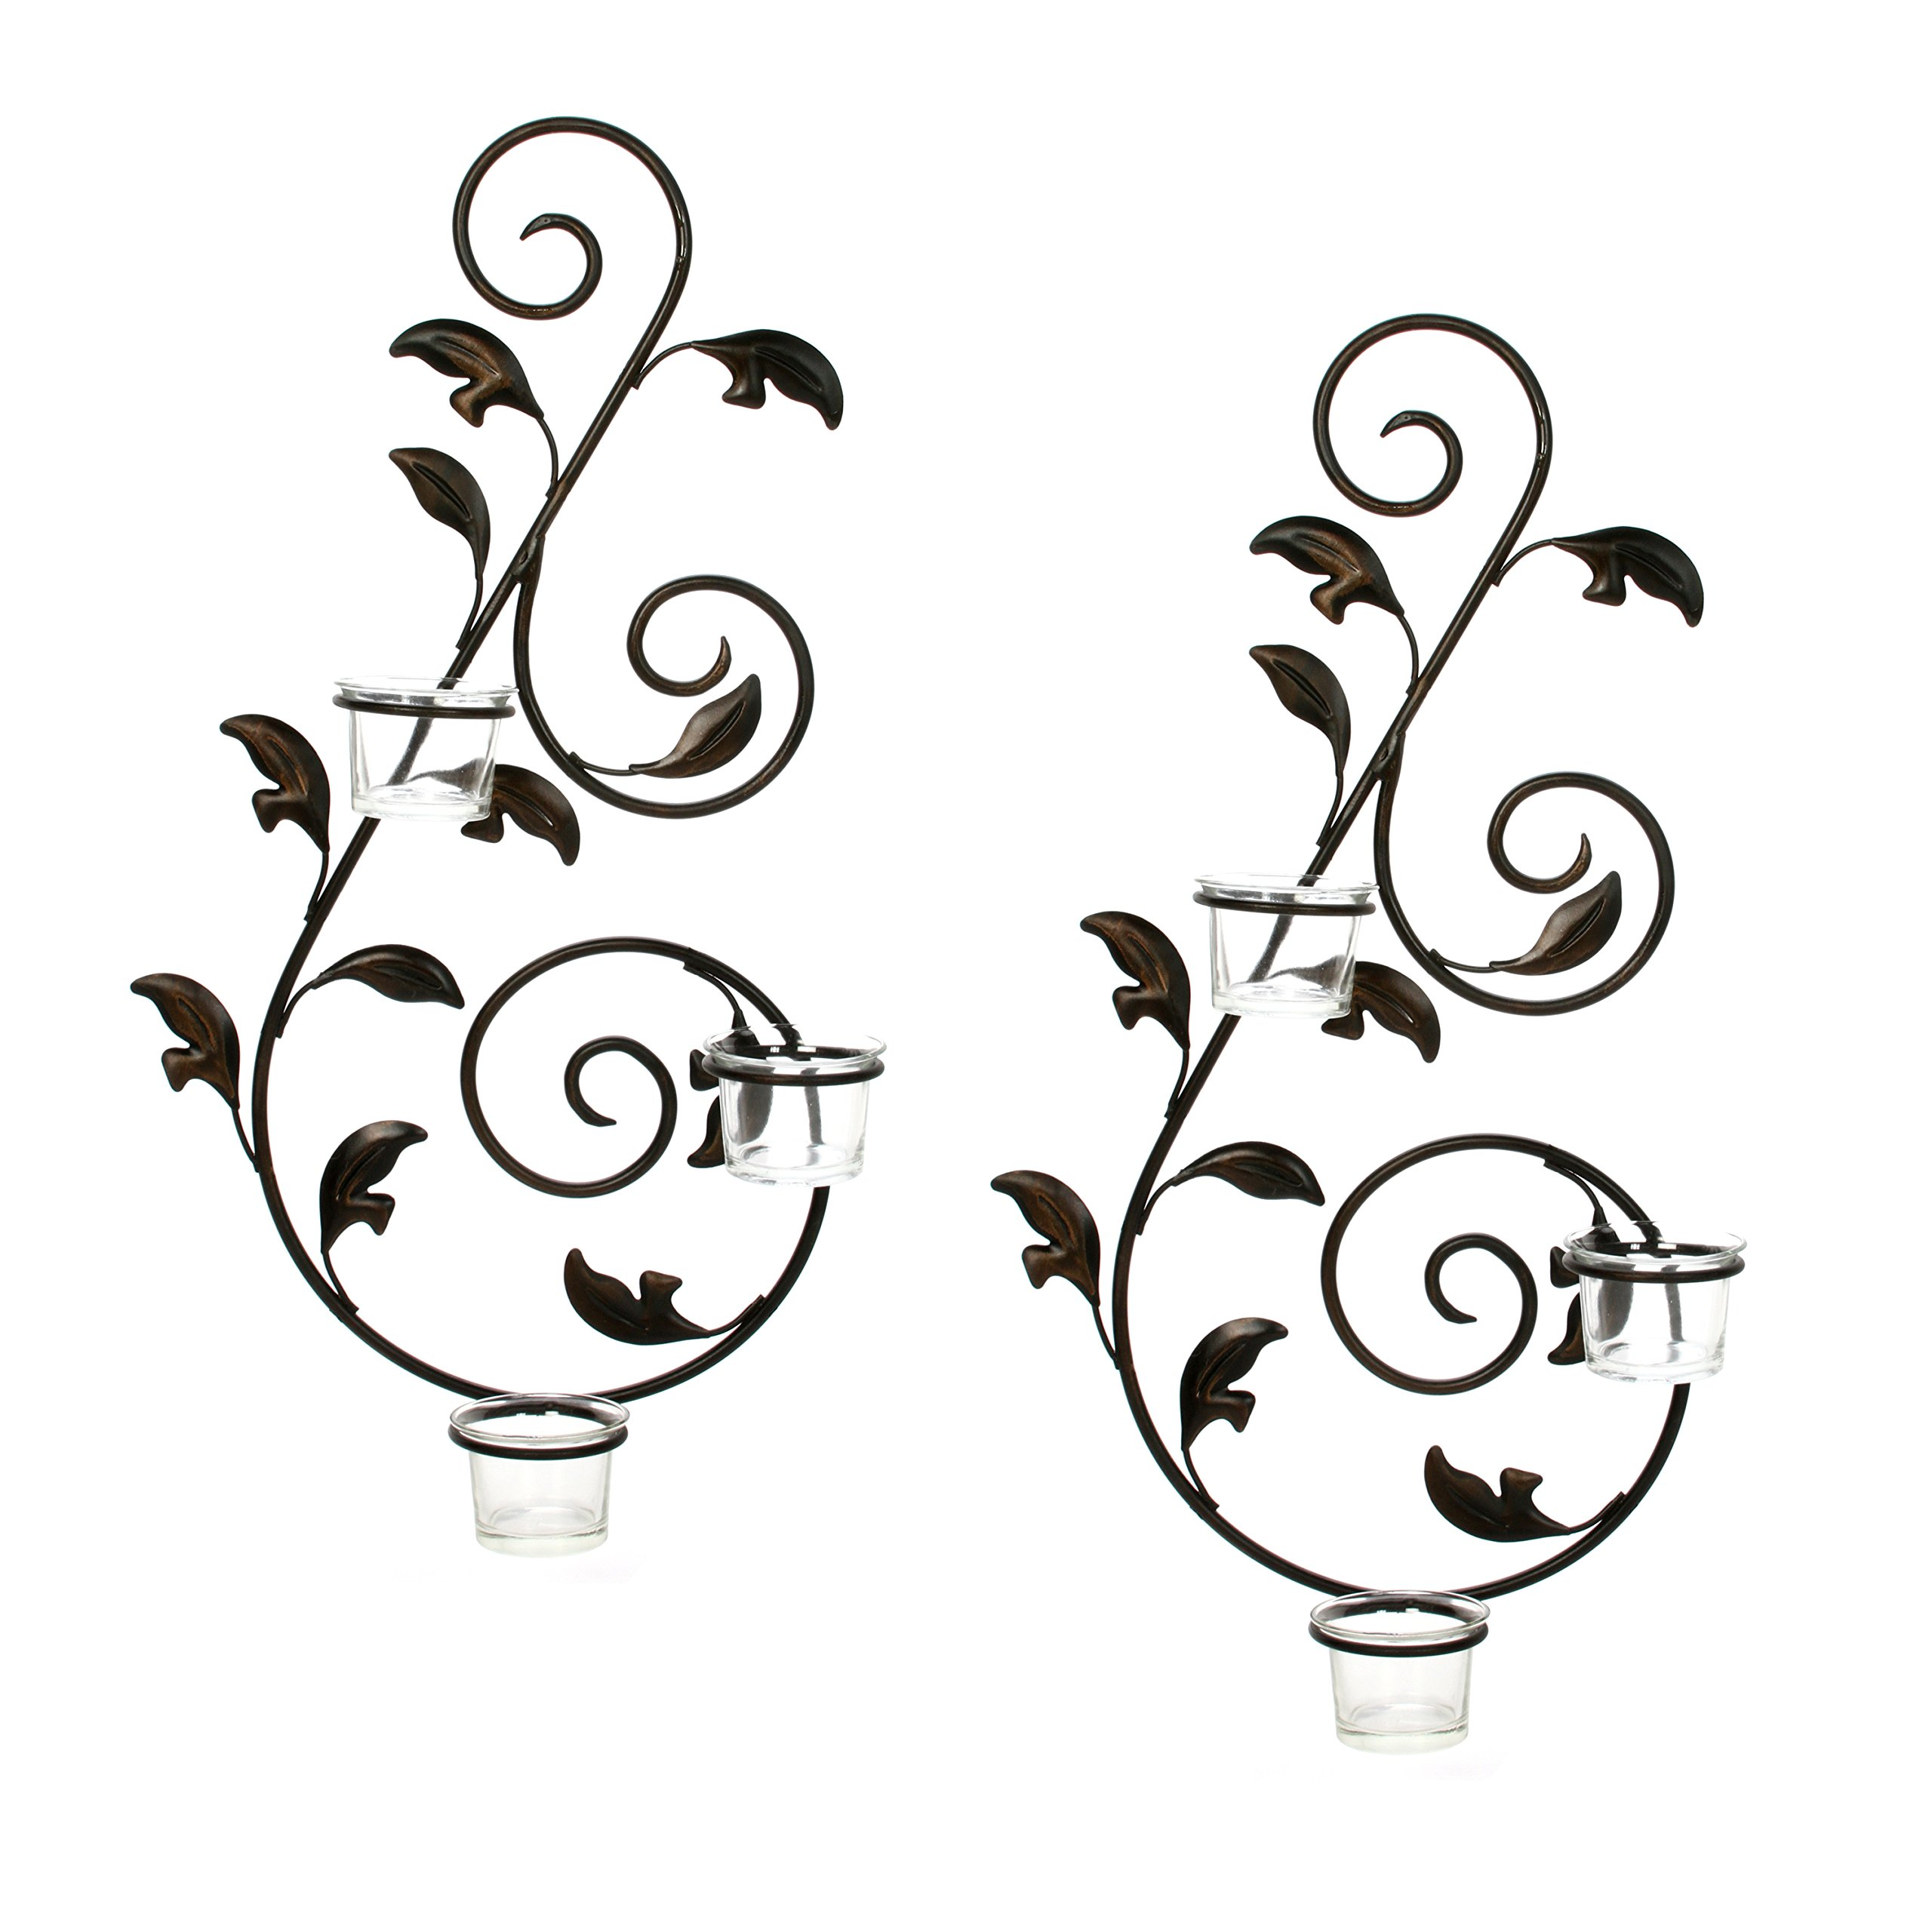 Hosley Set of 2 Iron Leaf Wall Sconce w/Tea Lights 18'' High. Large Scale Wall Decor. Includes Free Tea Lights, Glass Holder. Ideal Gift Home, Spa, Party, Wedding, LED Tea Light Candle Garden O3